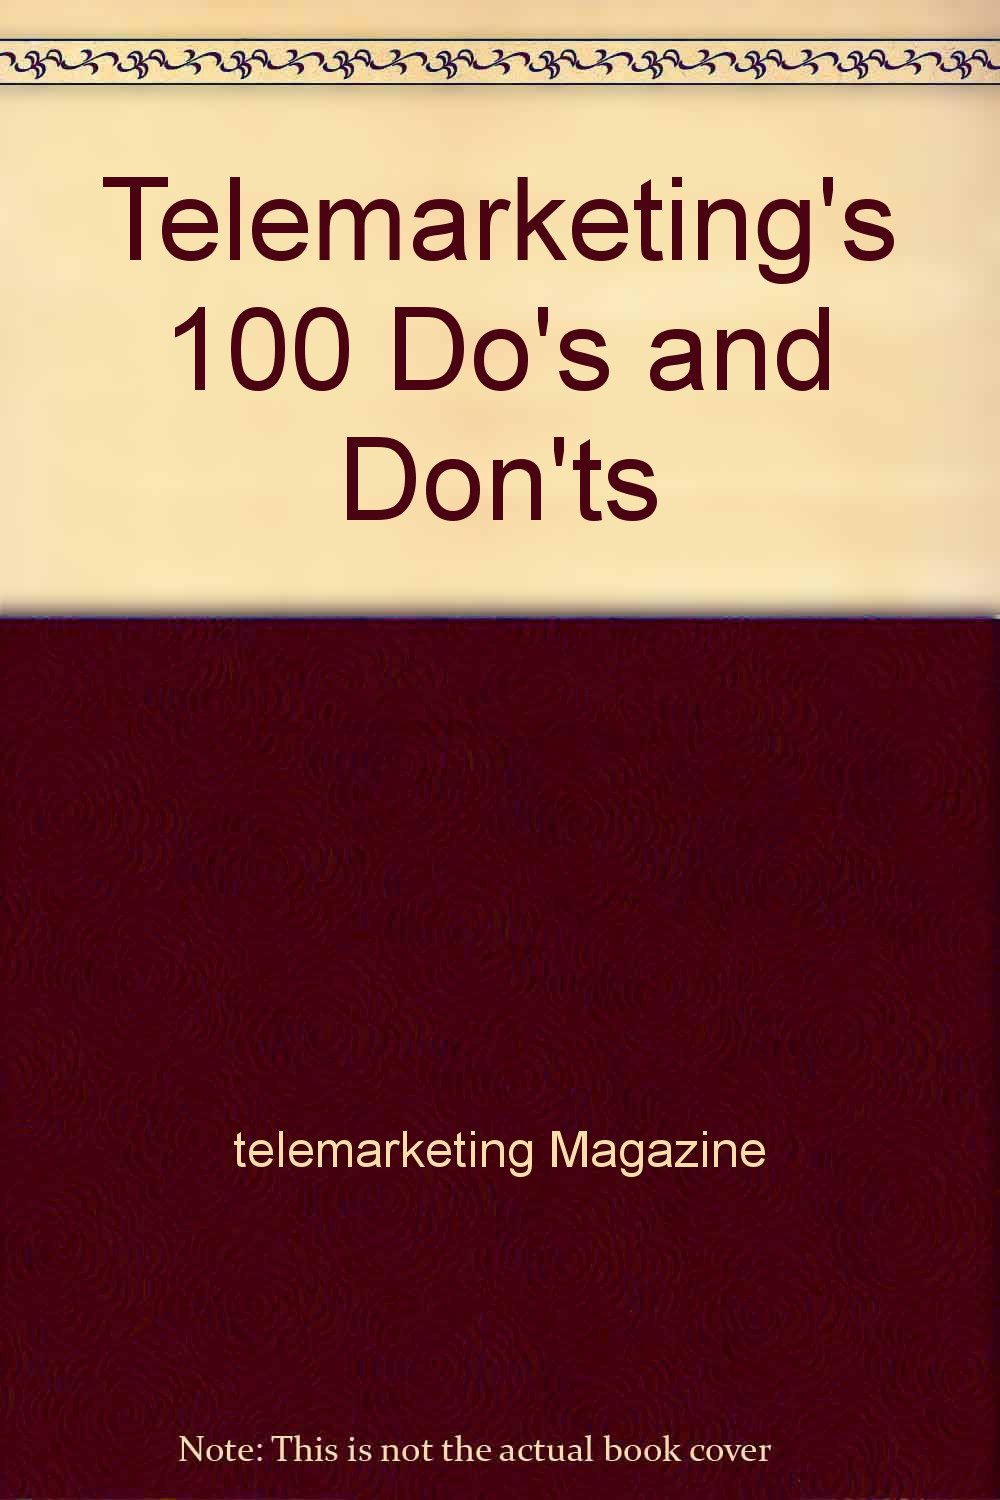 Telemarketing's 100 Do's and Don'ts